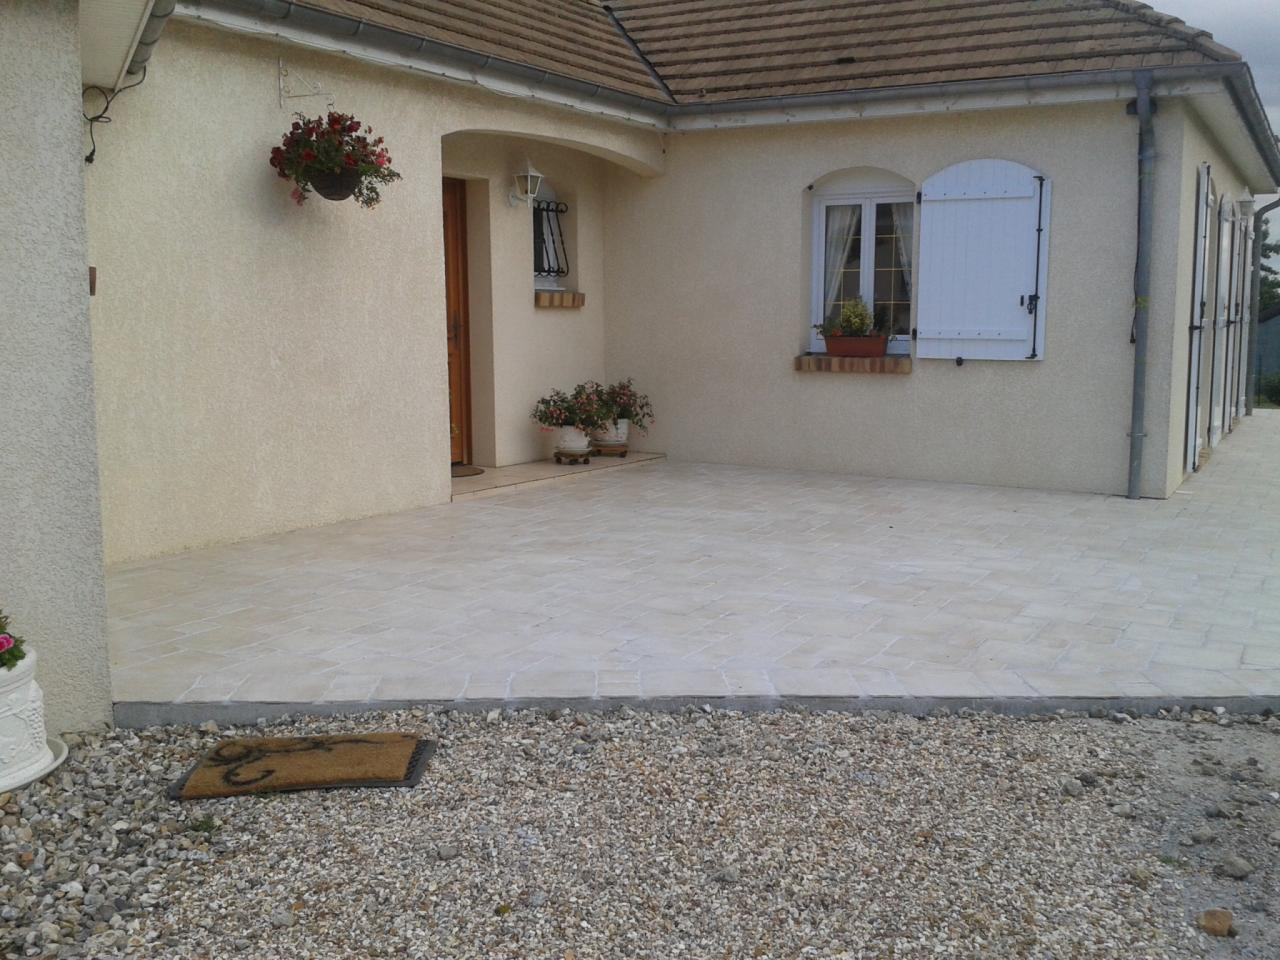 Carrelage ext rieur terrasse all e et trottoir for Pose carrelage exterieur sur carrelage existant